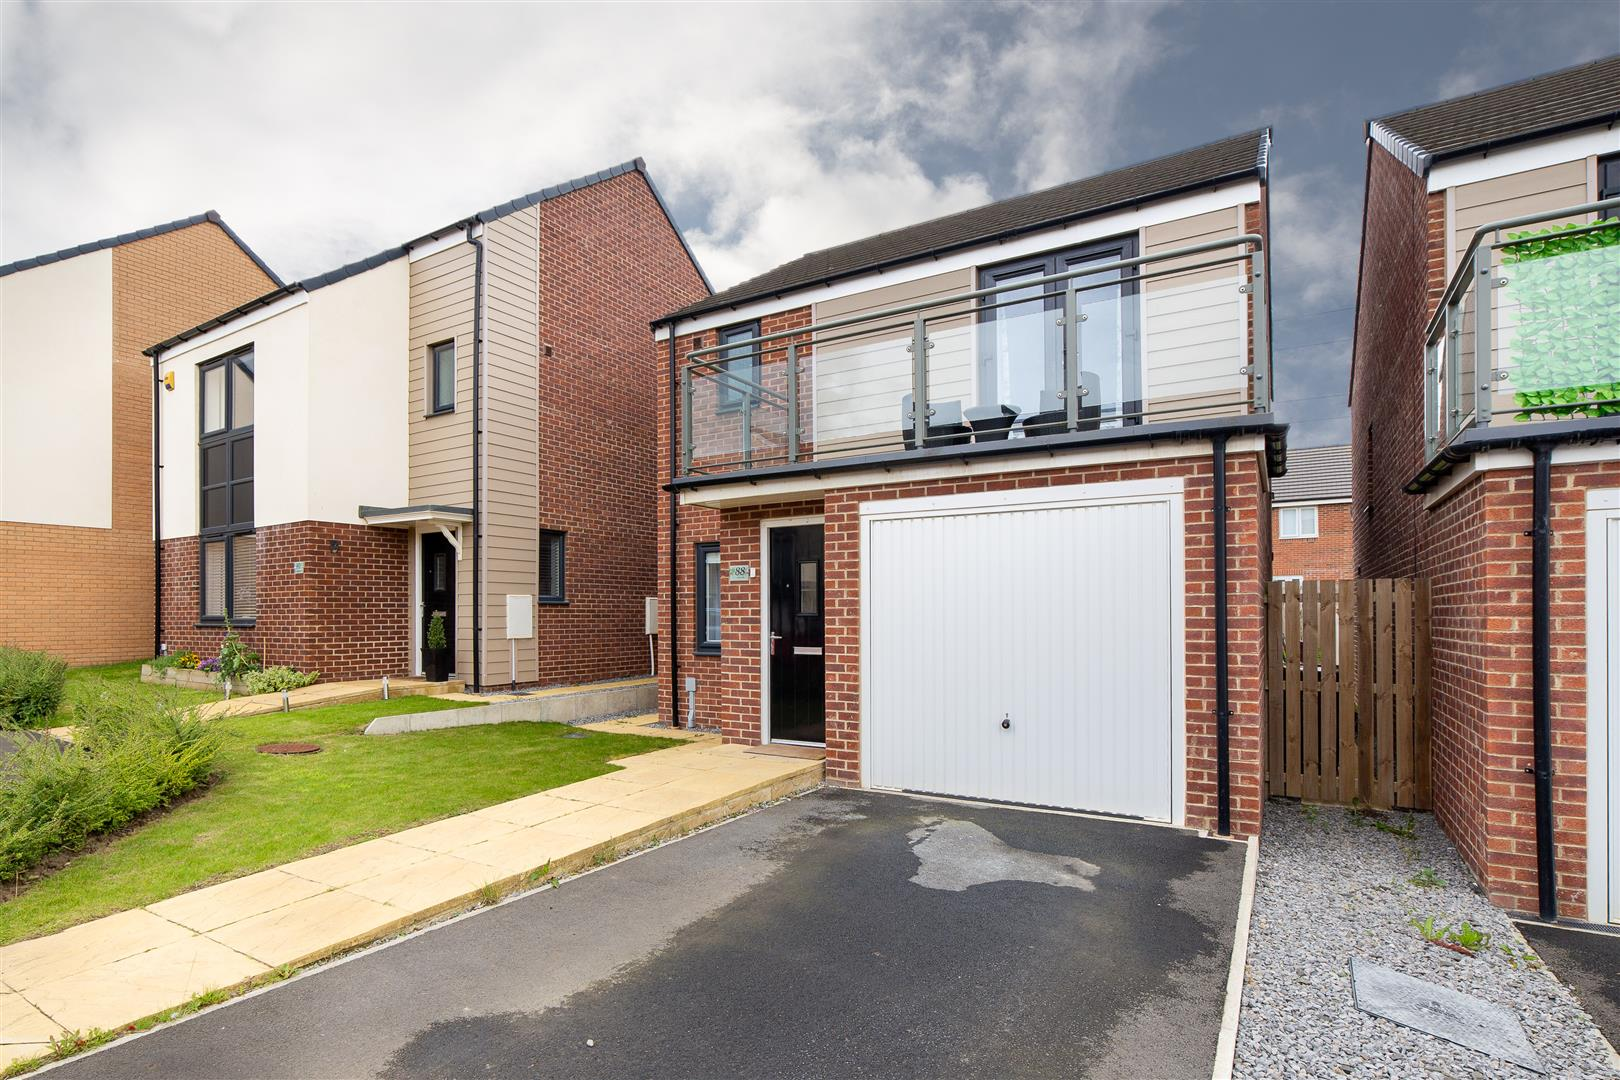 3 bed detached house for sale in Newcastle Upon Tyne, NE13 9DW 0